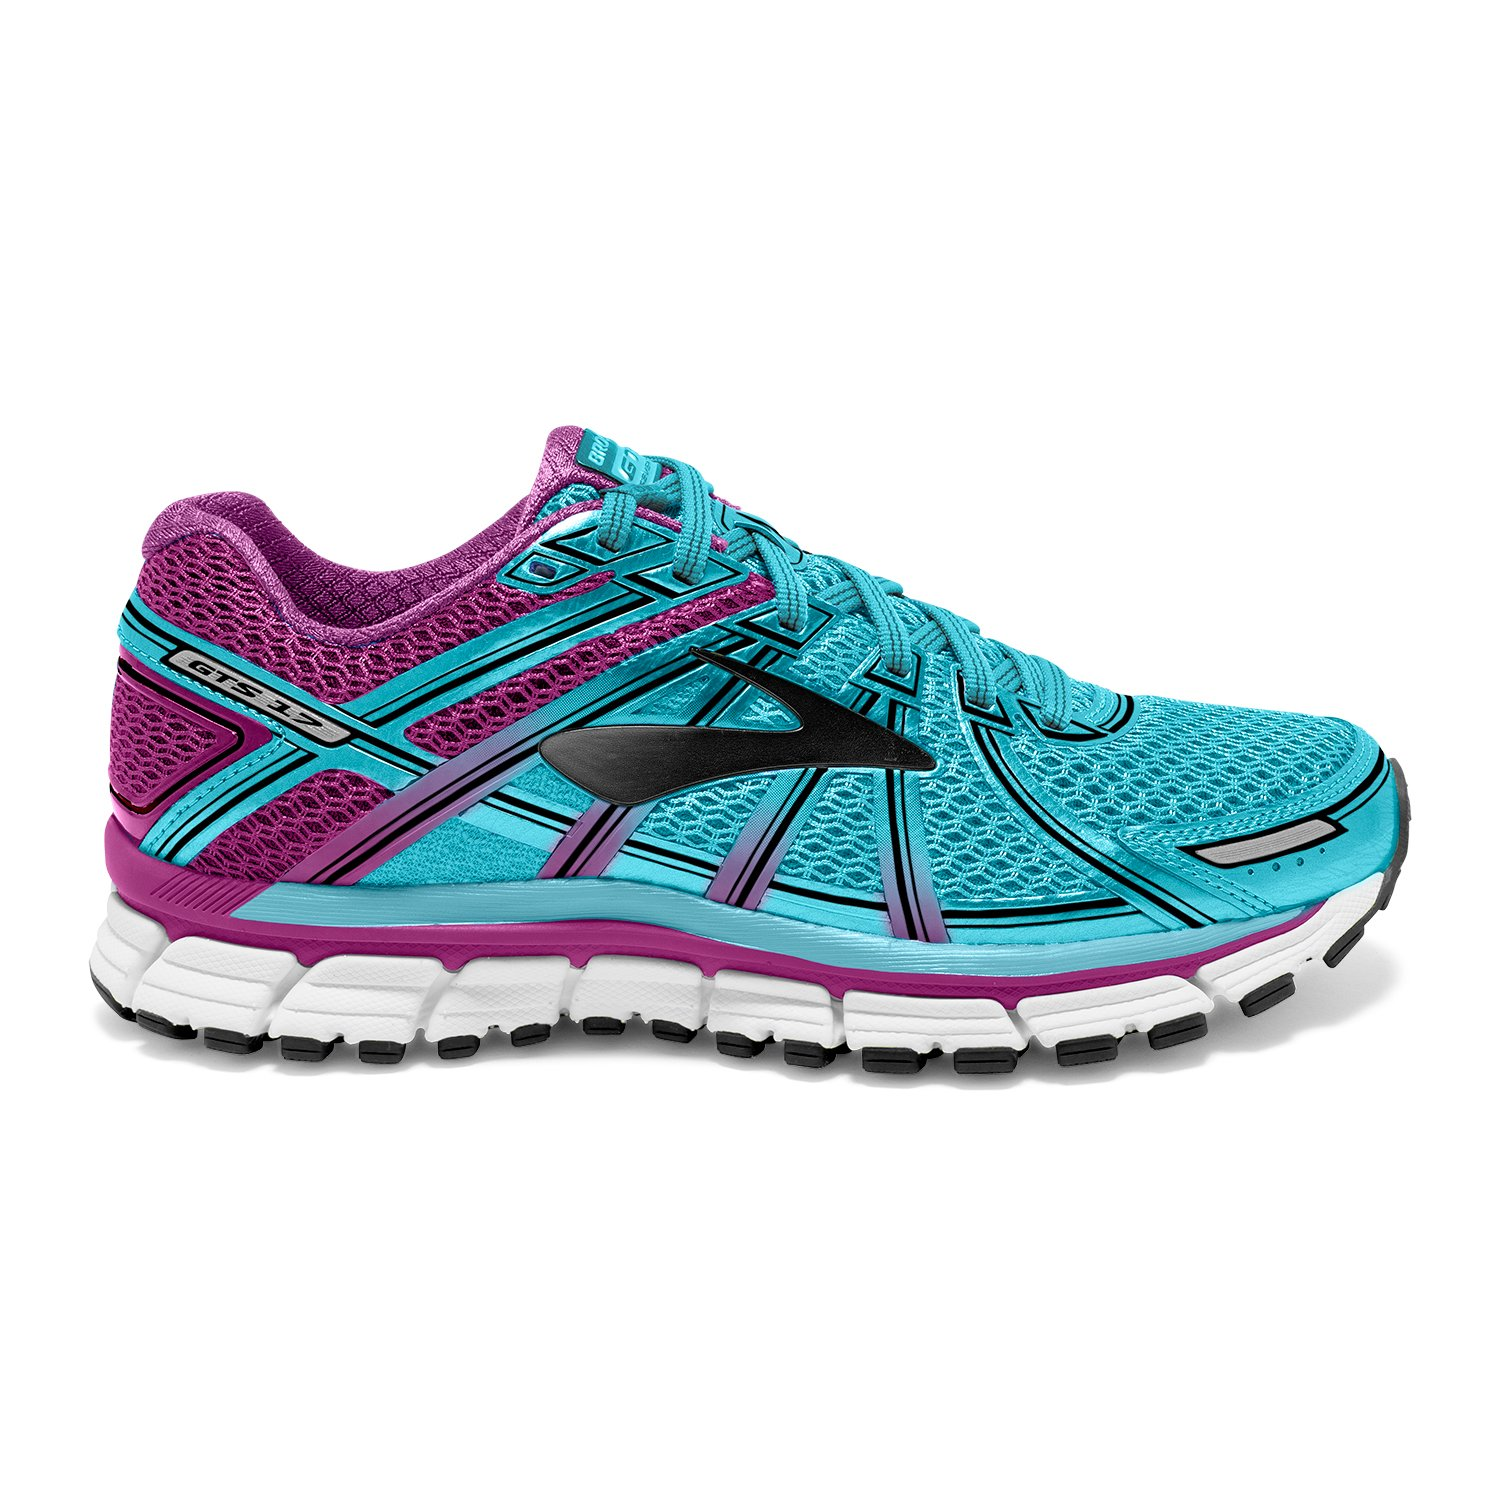 0b4b42fa7379b Brooks Women s Adrenaline GTS 17 Iceland Blue Hollyhock Black Athletic Shoe   Amazon.in  Shoes   Handbags